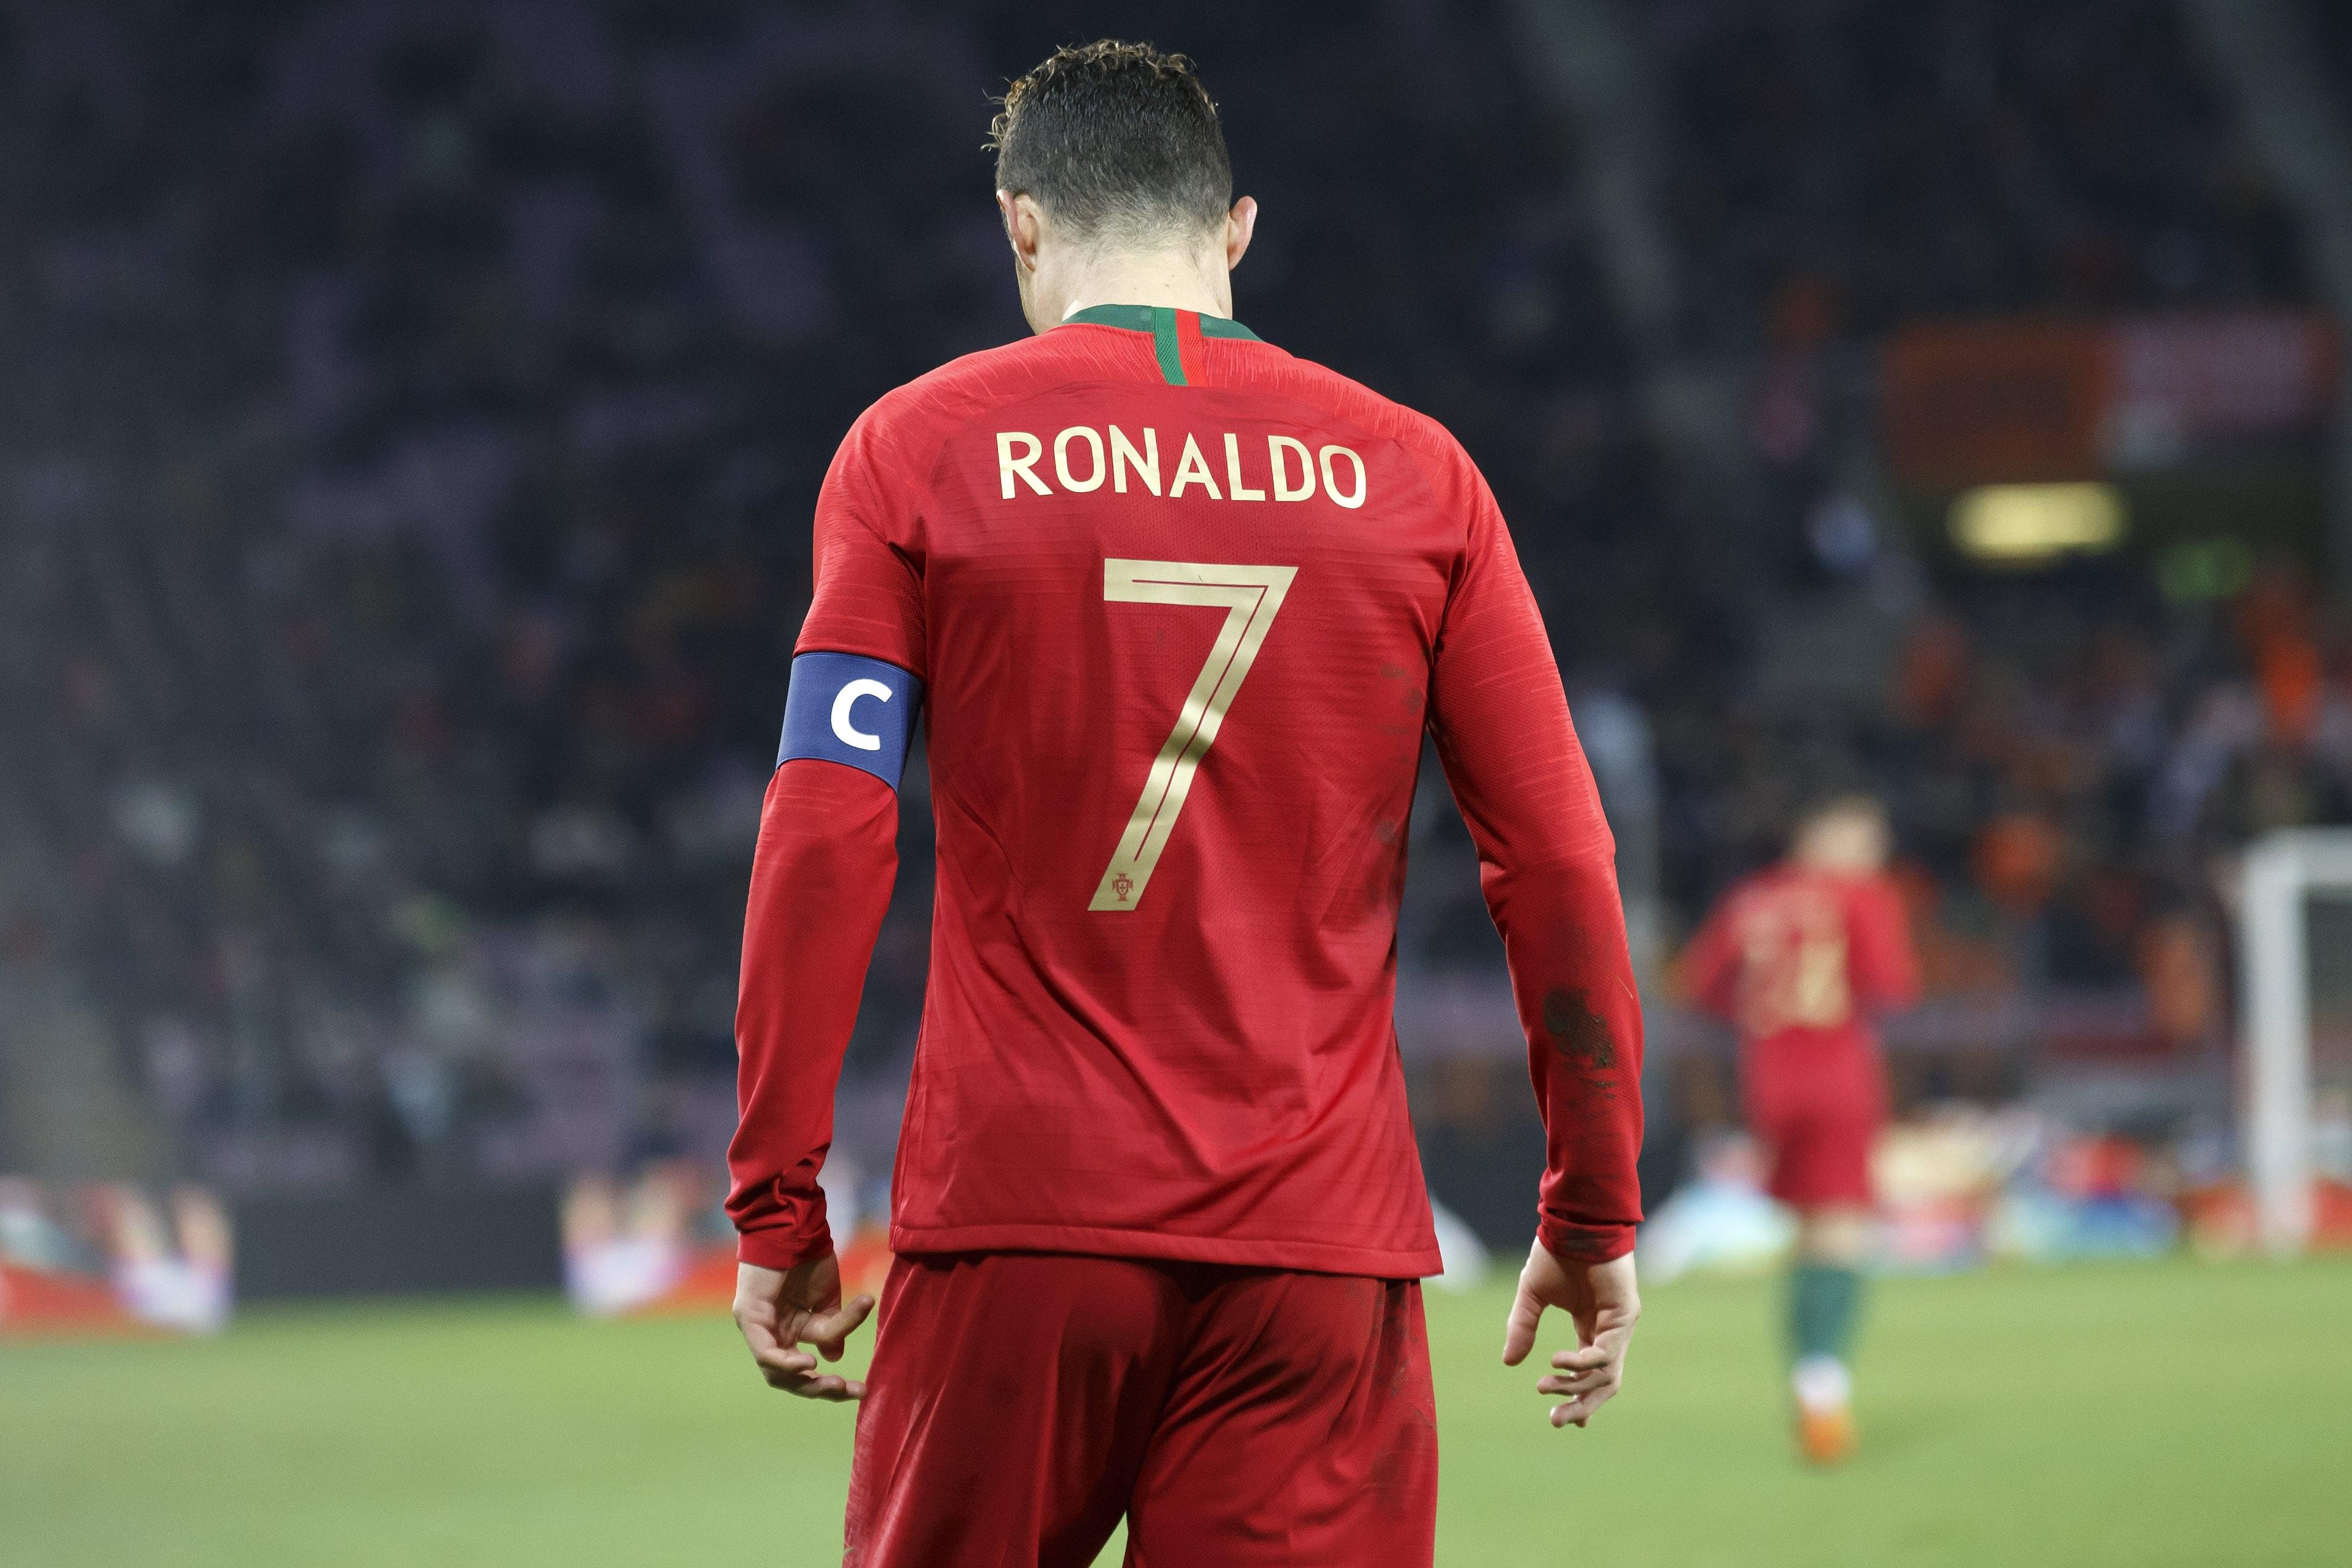 Time's running out for CR7 to win the World Cup